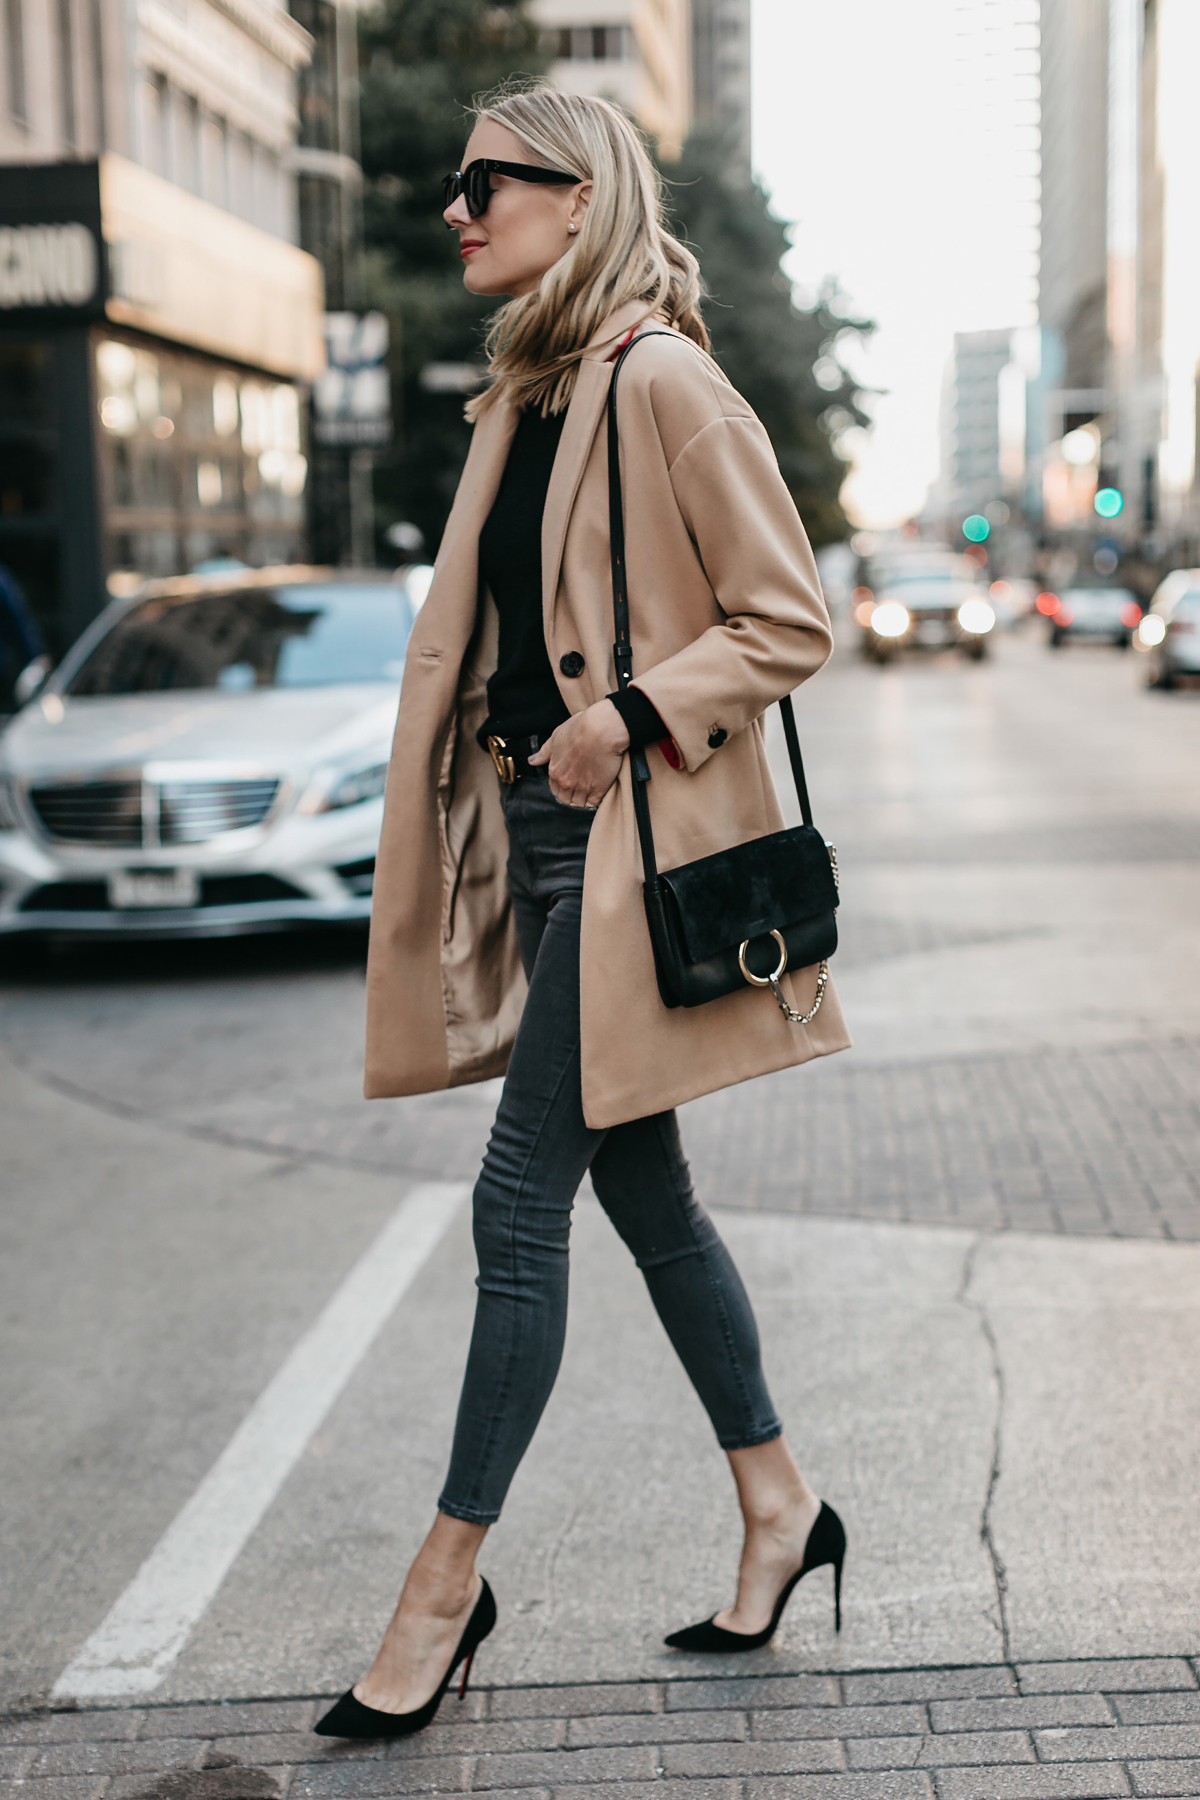 Blonde Woman Wearing Topshop Camel Coat Black Sweater Christian Louboutin Black Pumps Chloe Faye Black Handbag Fashion Jackson Dallas Blogger Fashion Blogger Street Style